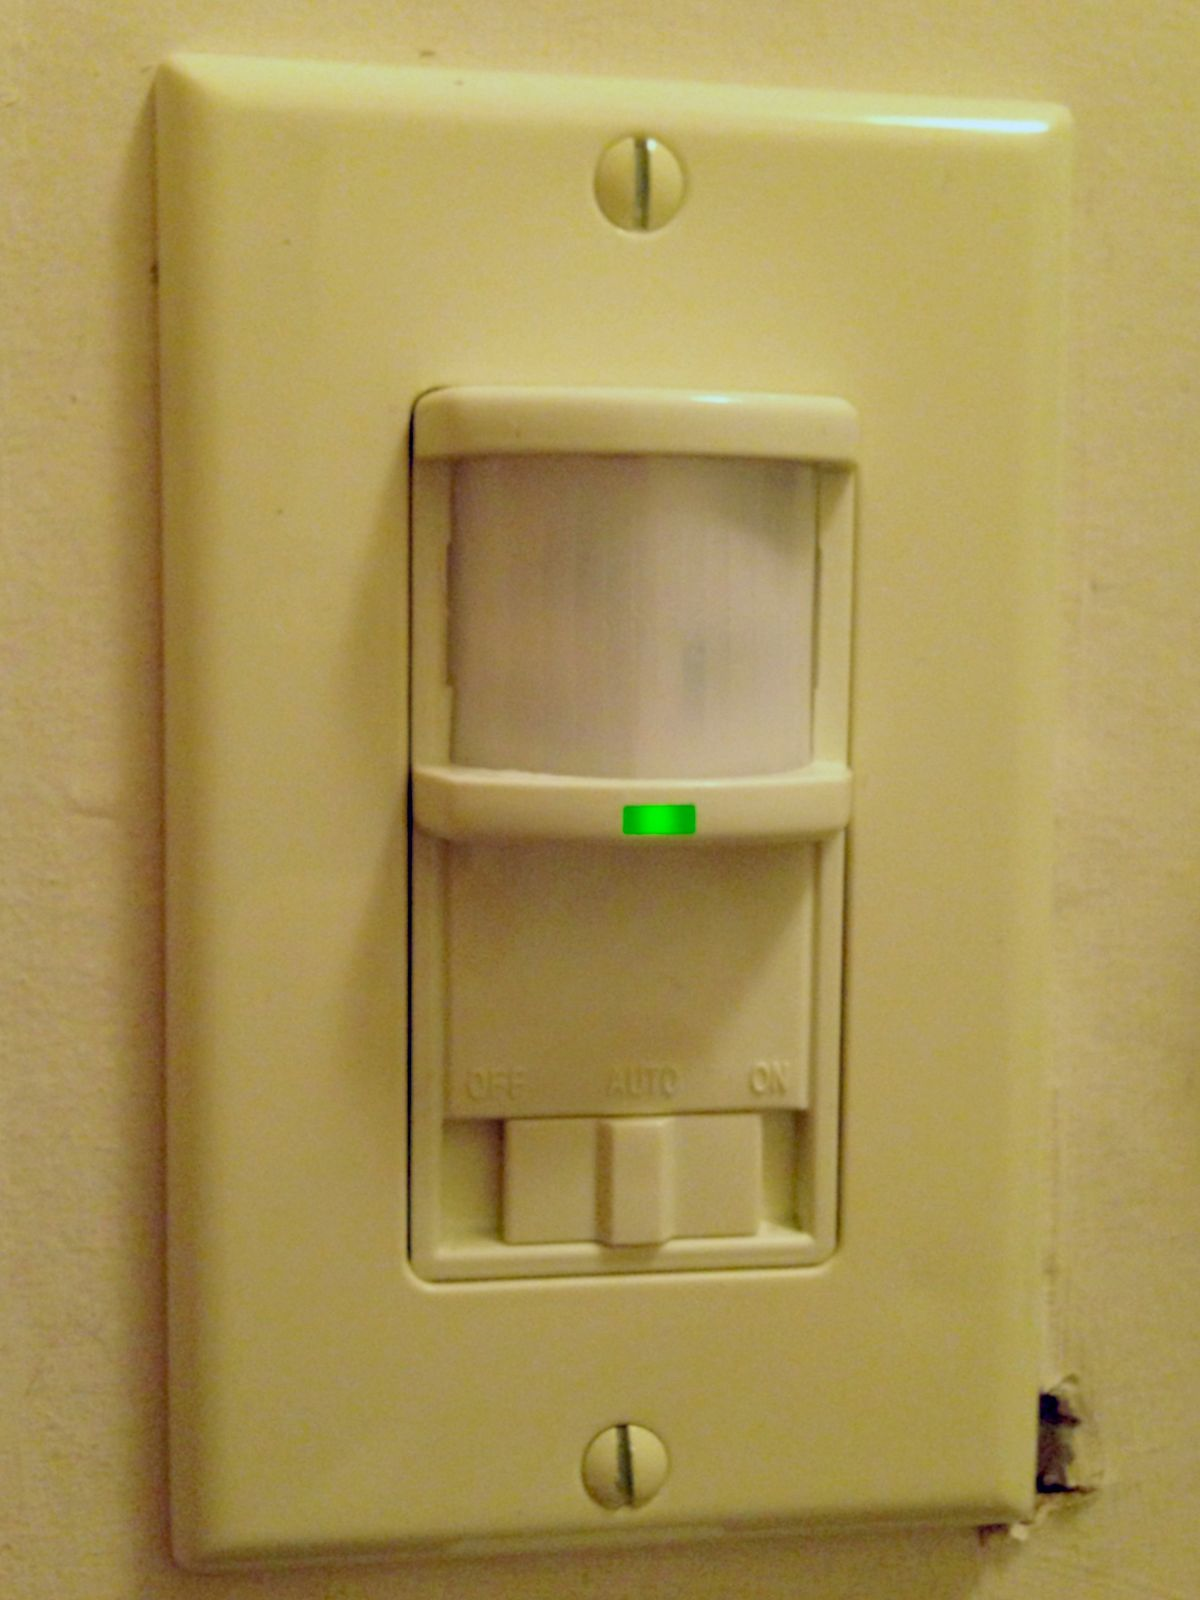 Occupancy sensor